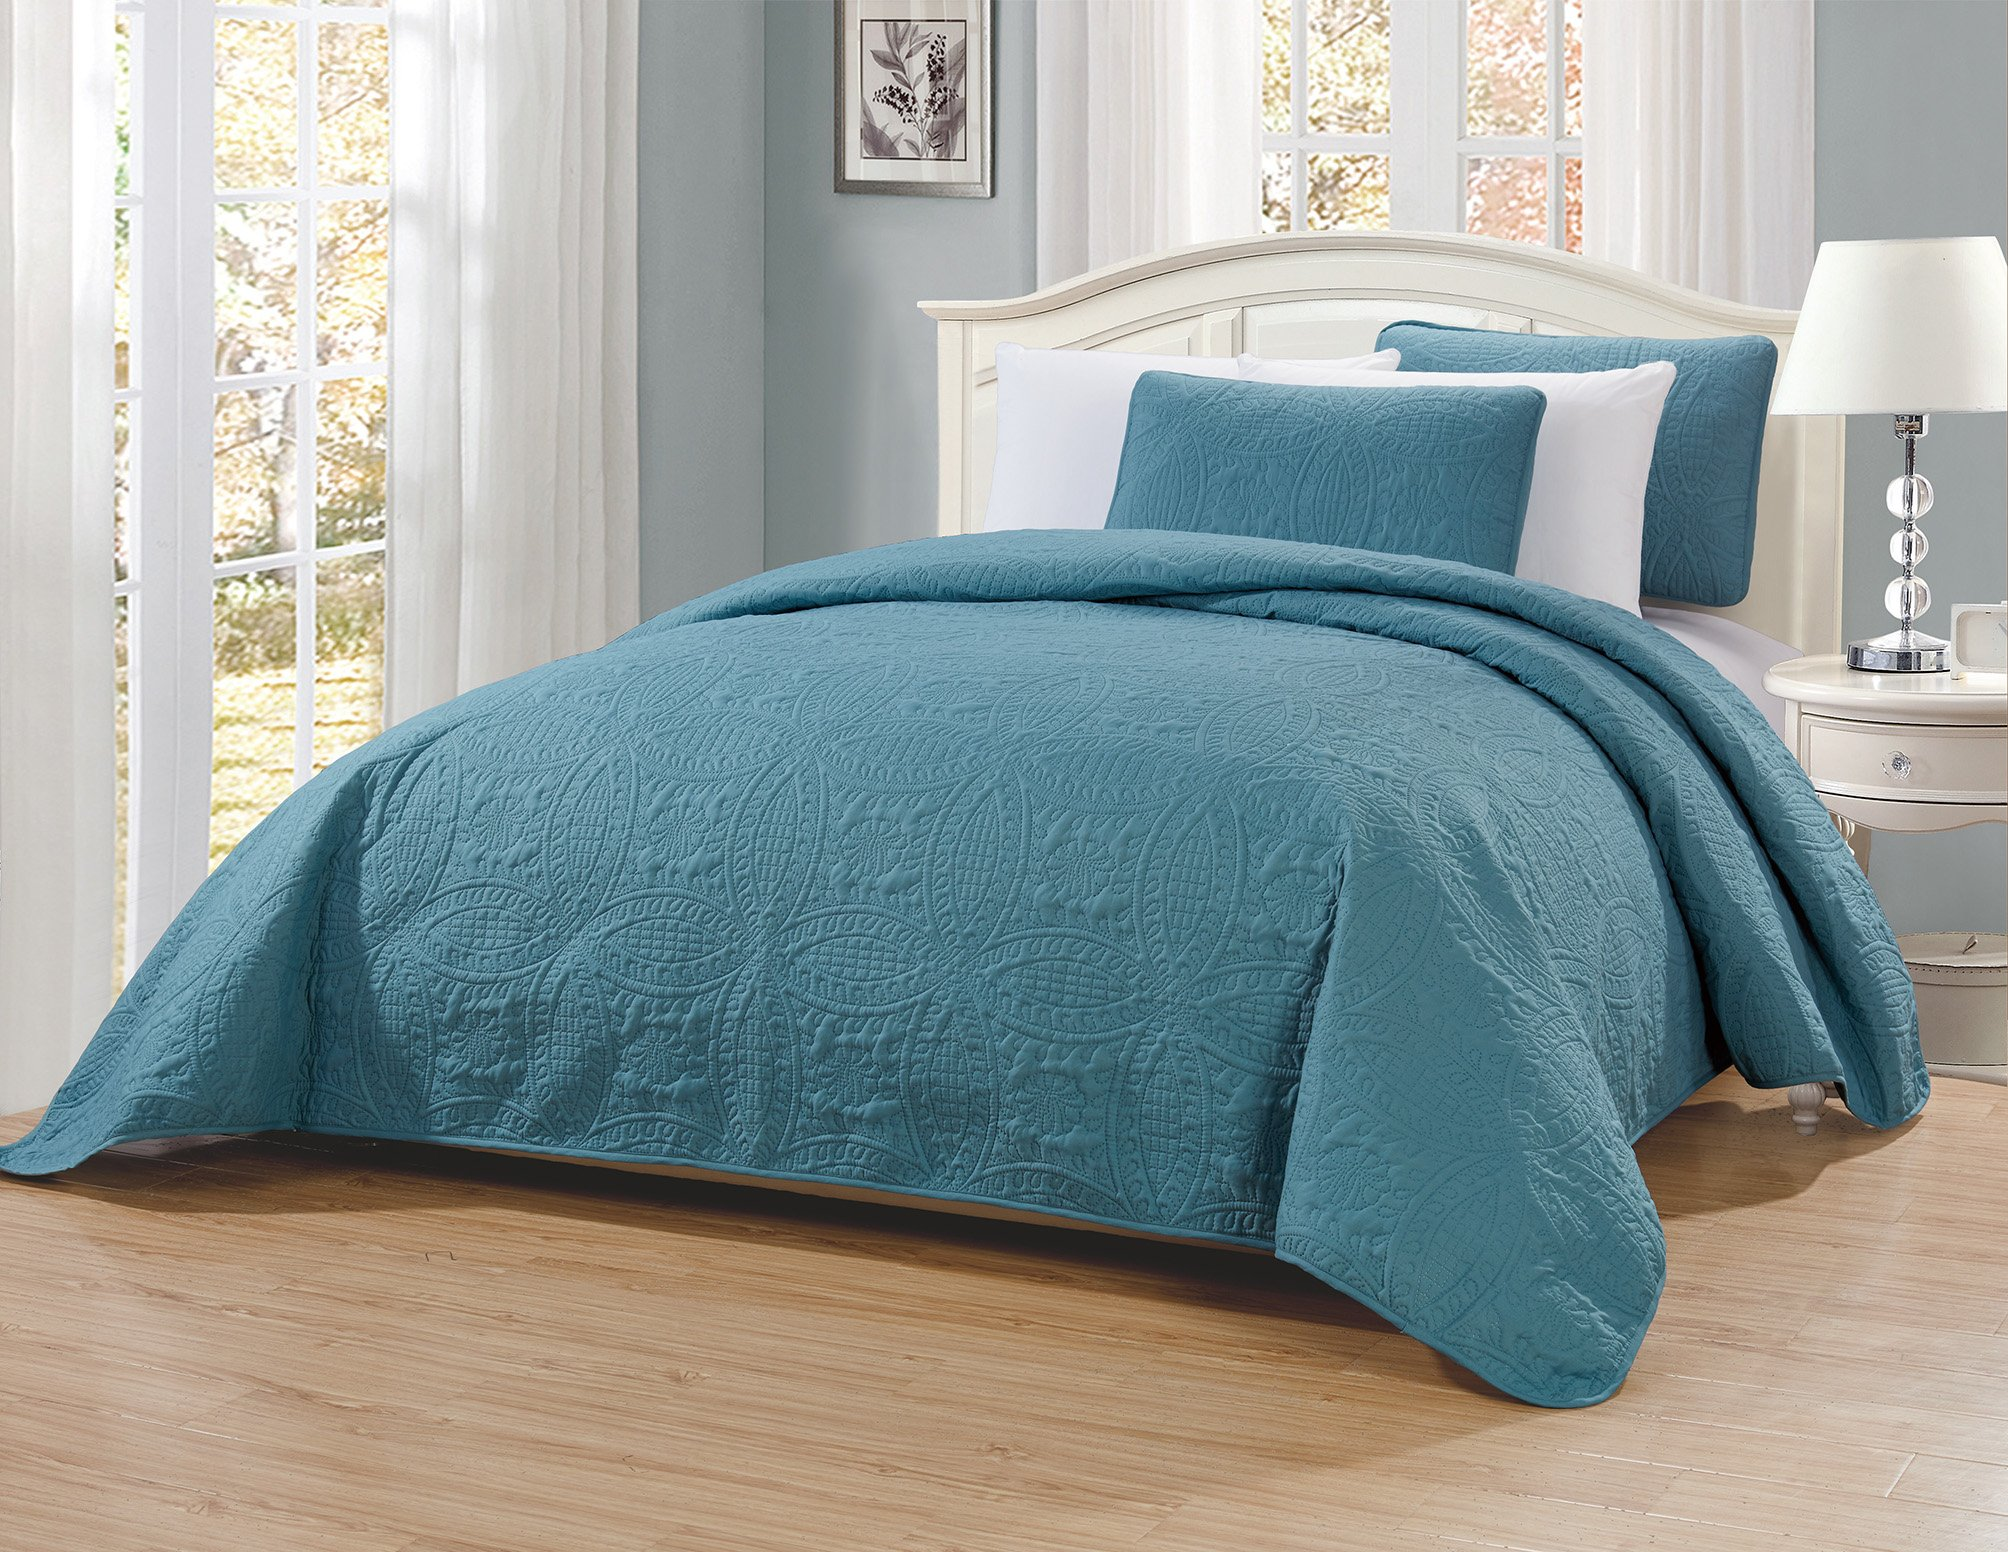 MK Home Mk Collection 3pc Full/Queen Solid Embossed Bedspread Bed Cover Over Size Spa Blue New